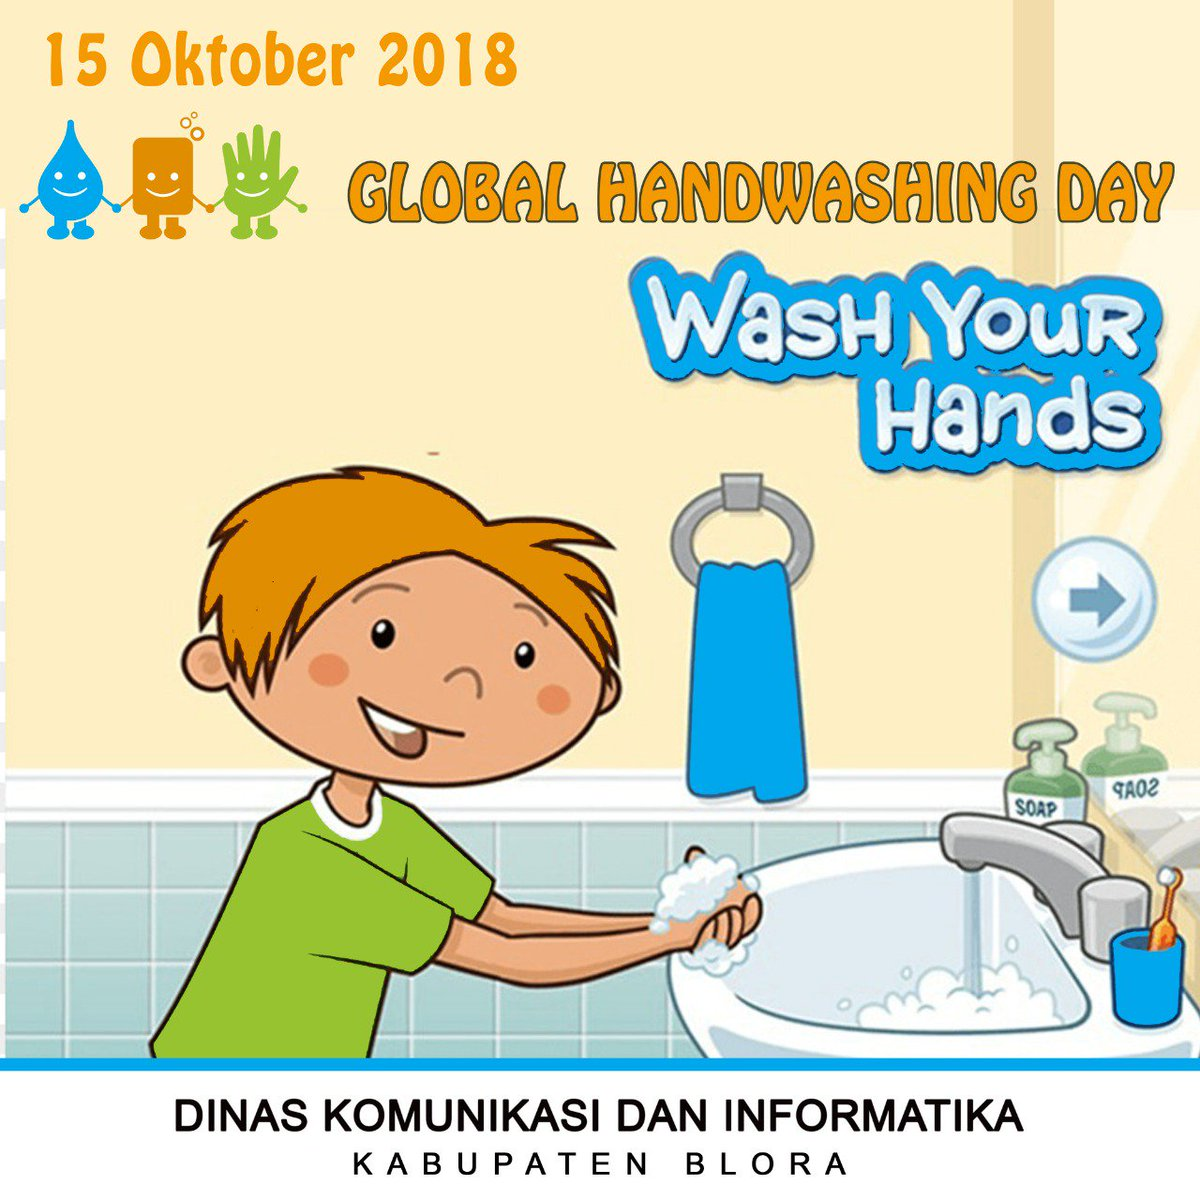 Dinkominfo Kab Blora On Twitter 15 Oktober Global Handwashing